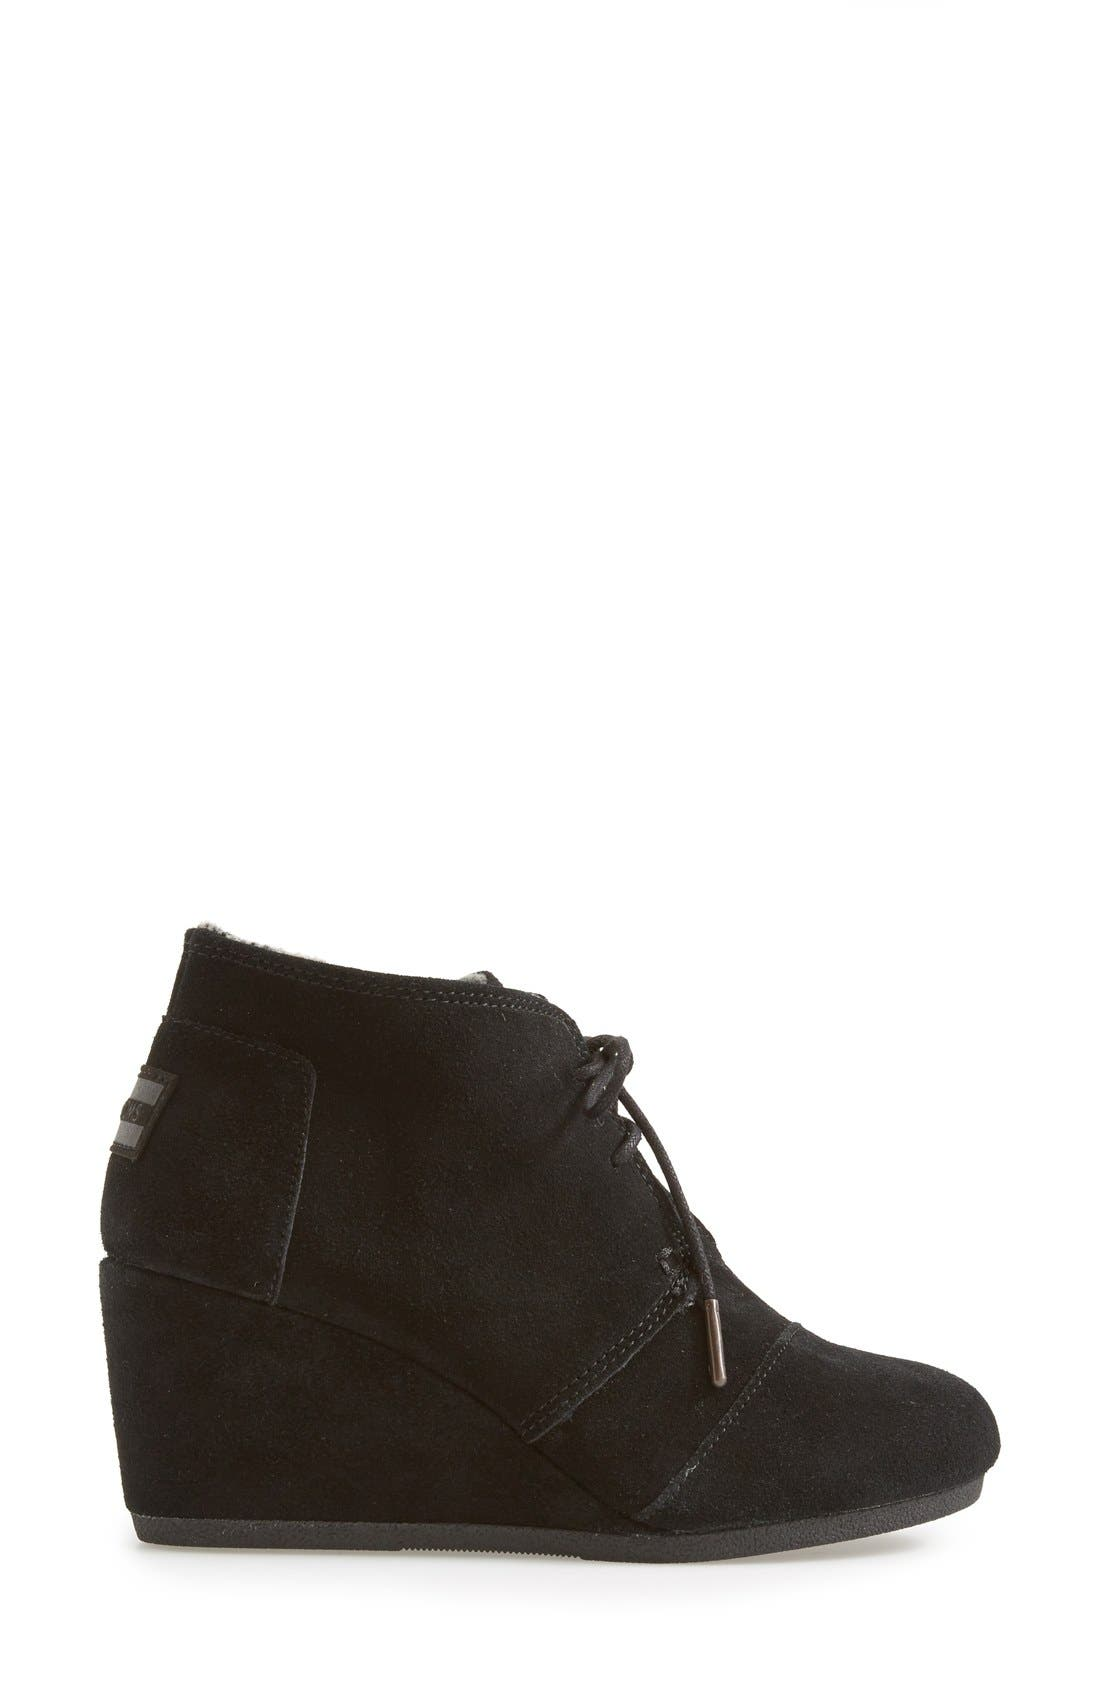 TOMS, 'Desert' Wedge Bootie, Alternate thumbnail 5, color, 001